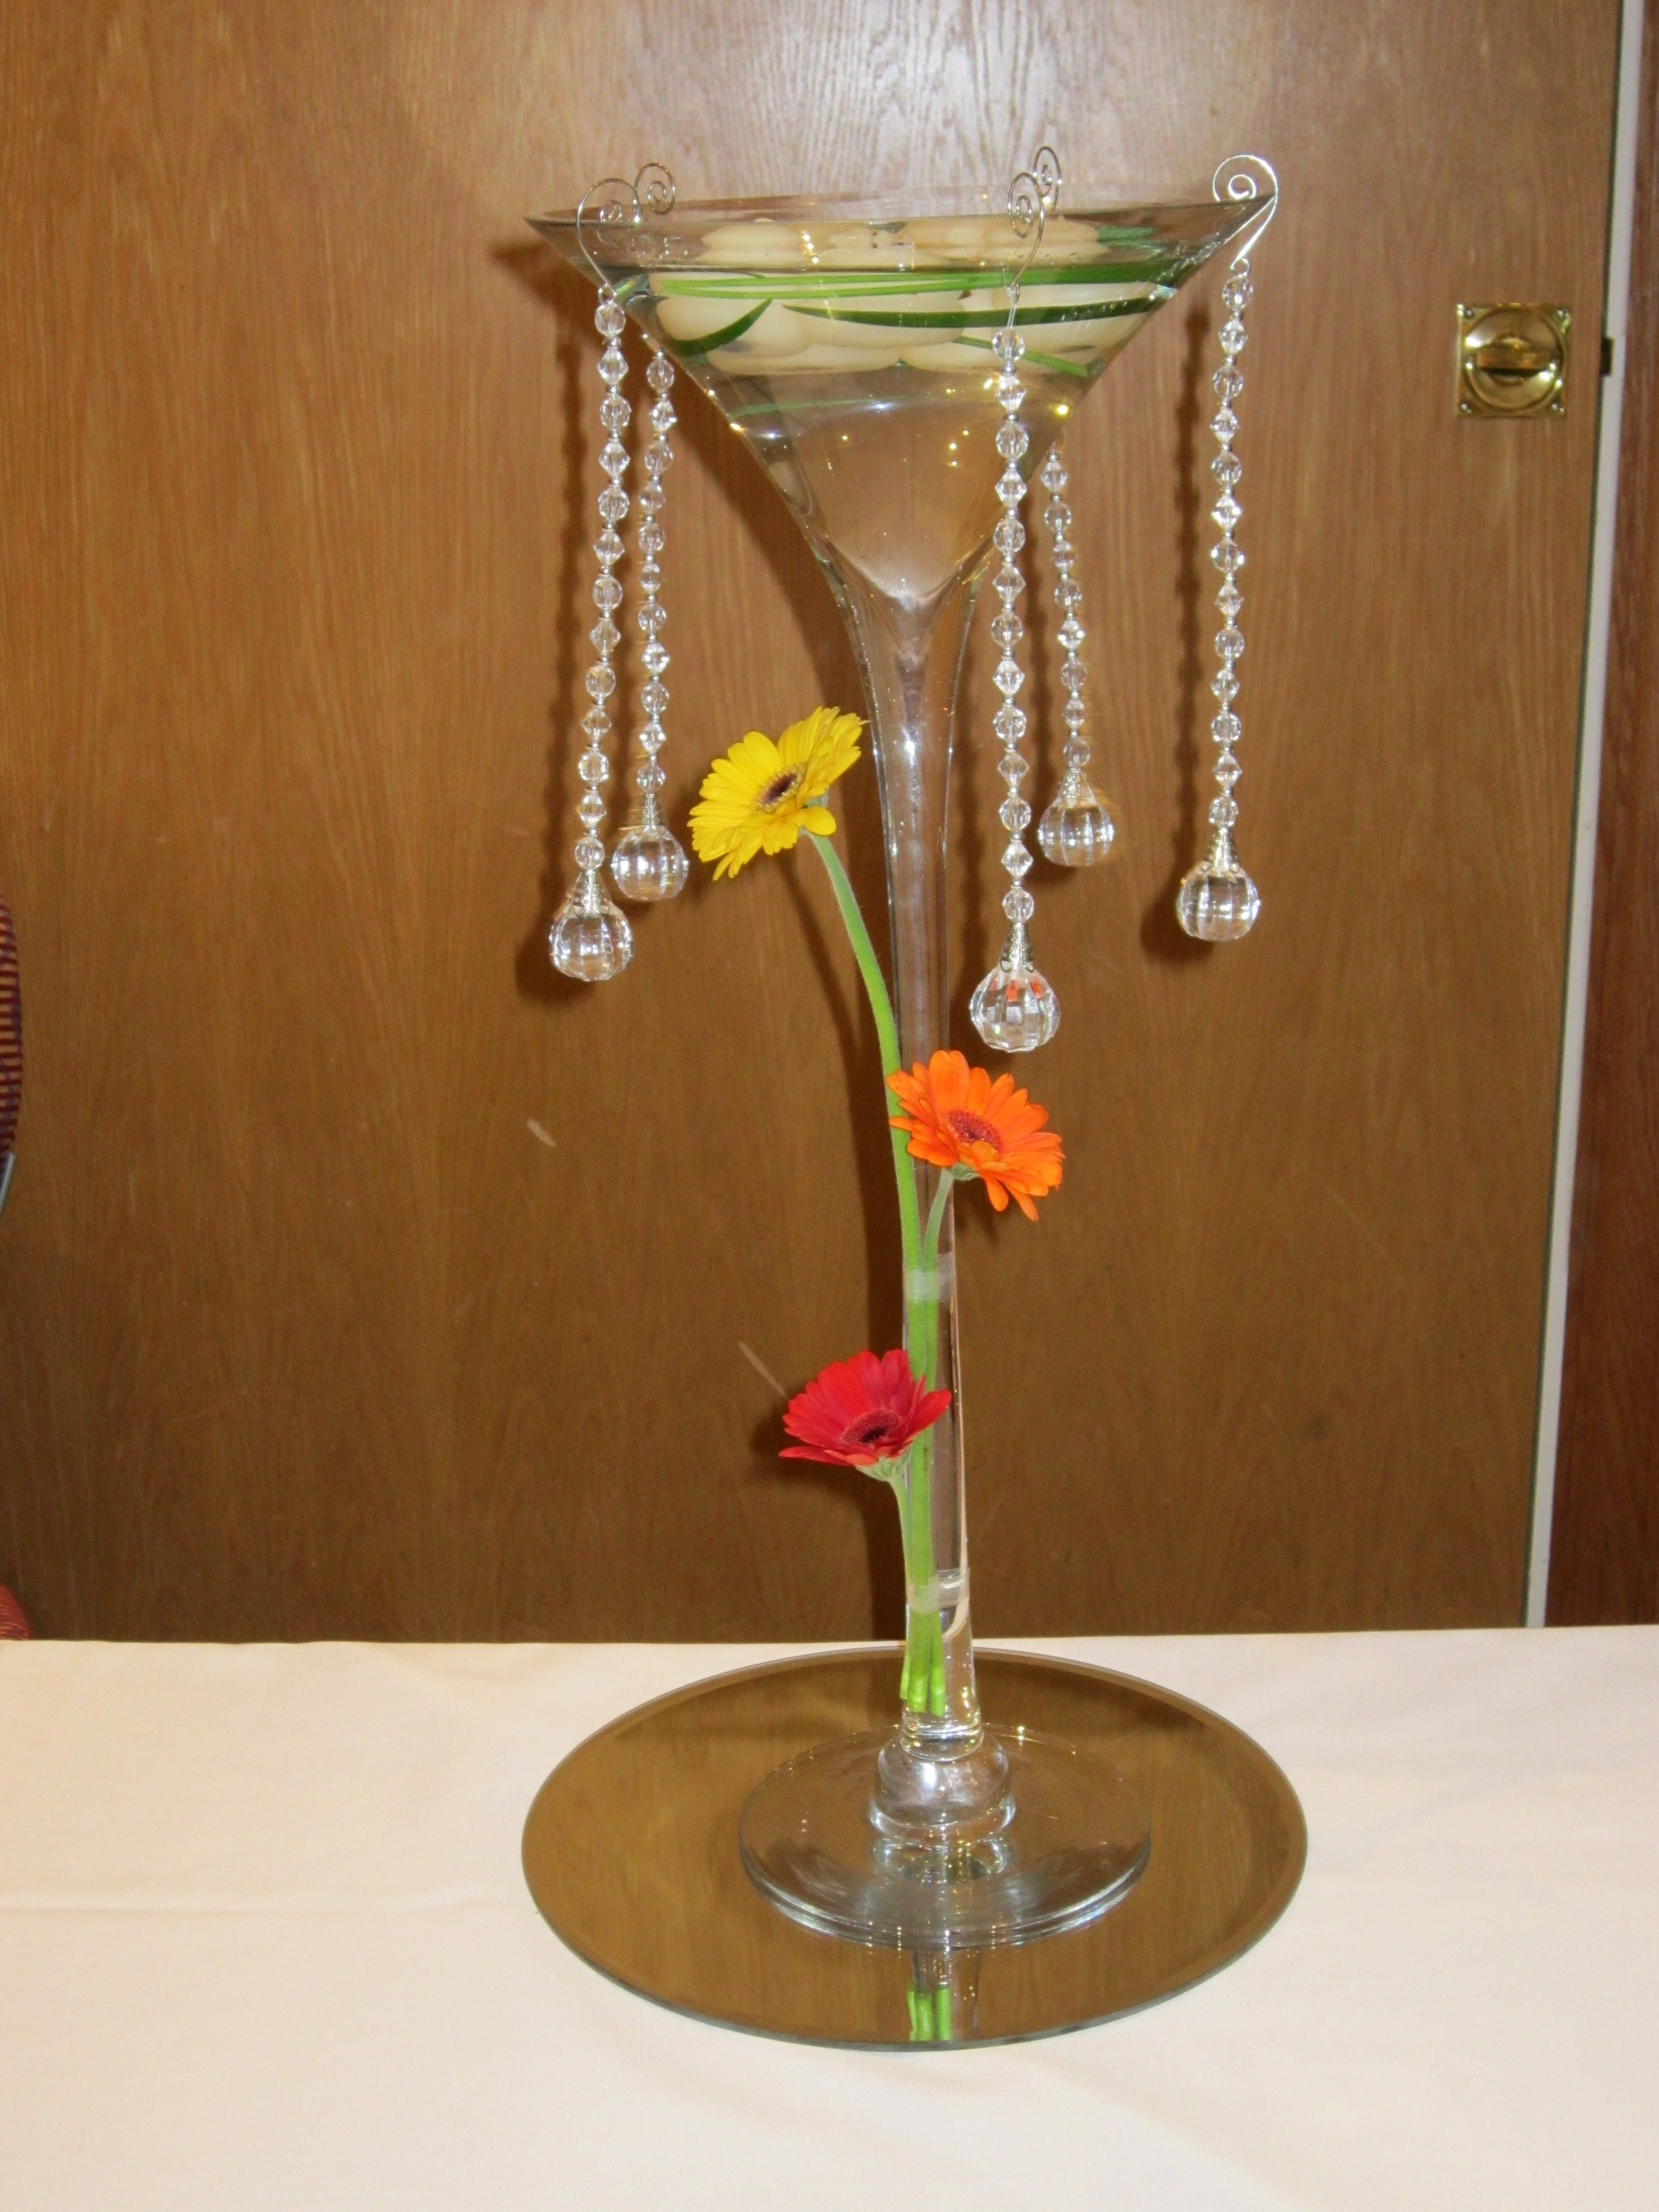 Martini vase display with floating candles gerberas and hanging